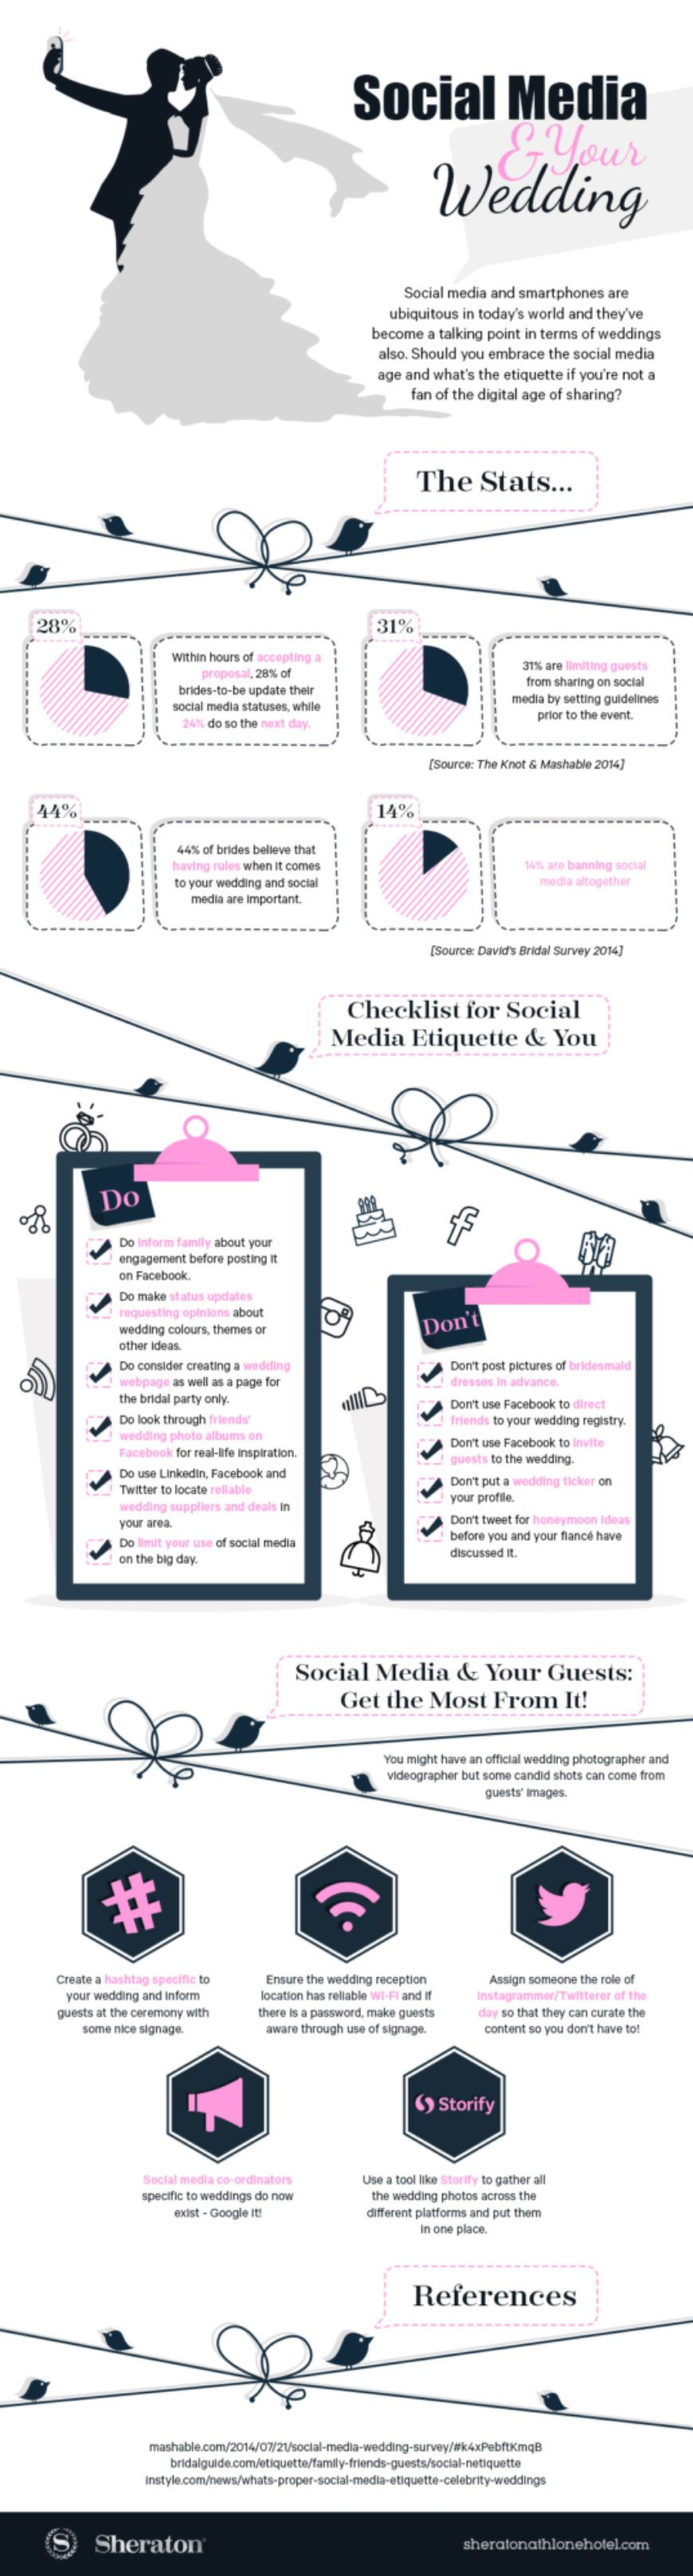 Social Media Etiquette And Weddings Infographic